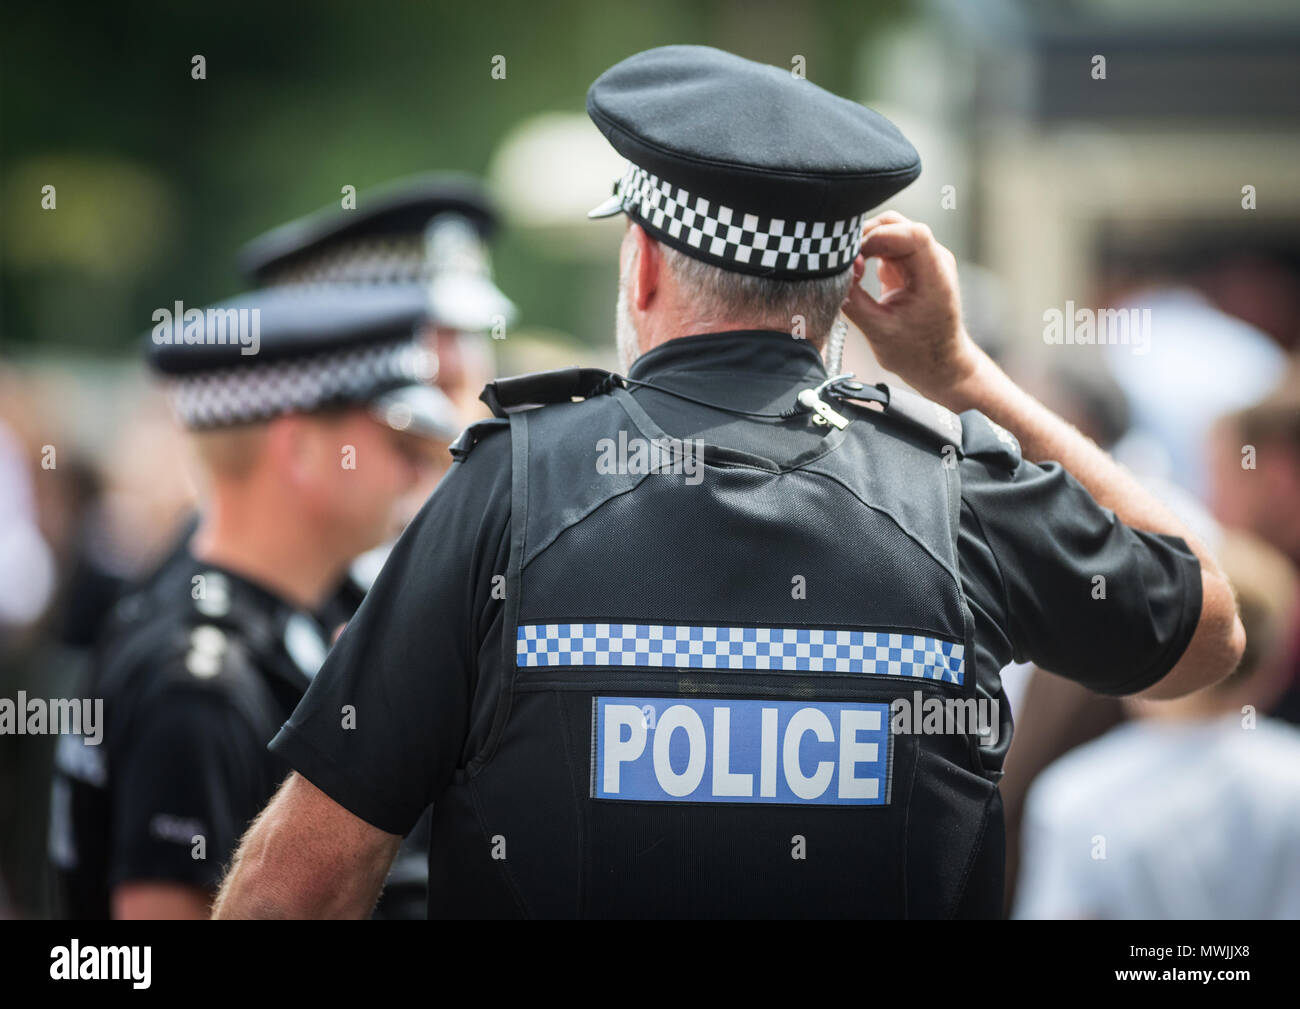 Police officers on duty at a public event in Hampshire, with a policeman listening to his police radio in his ear - Stock Image